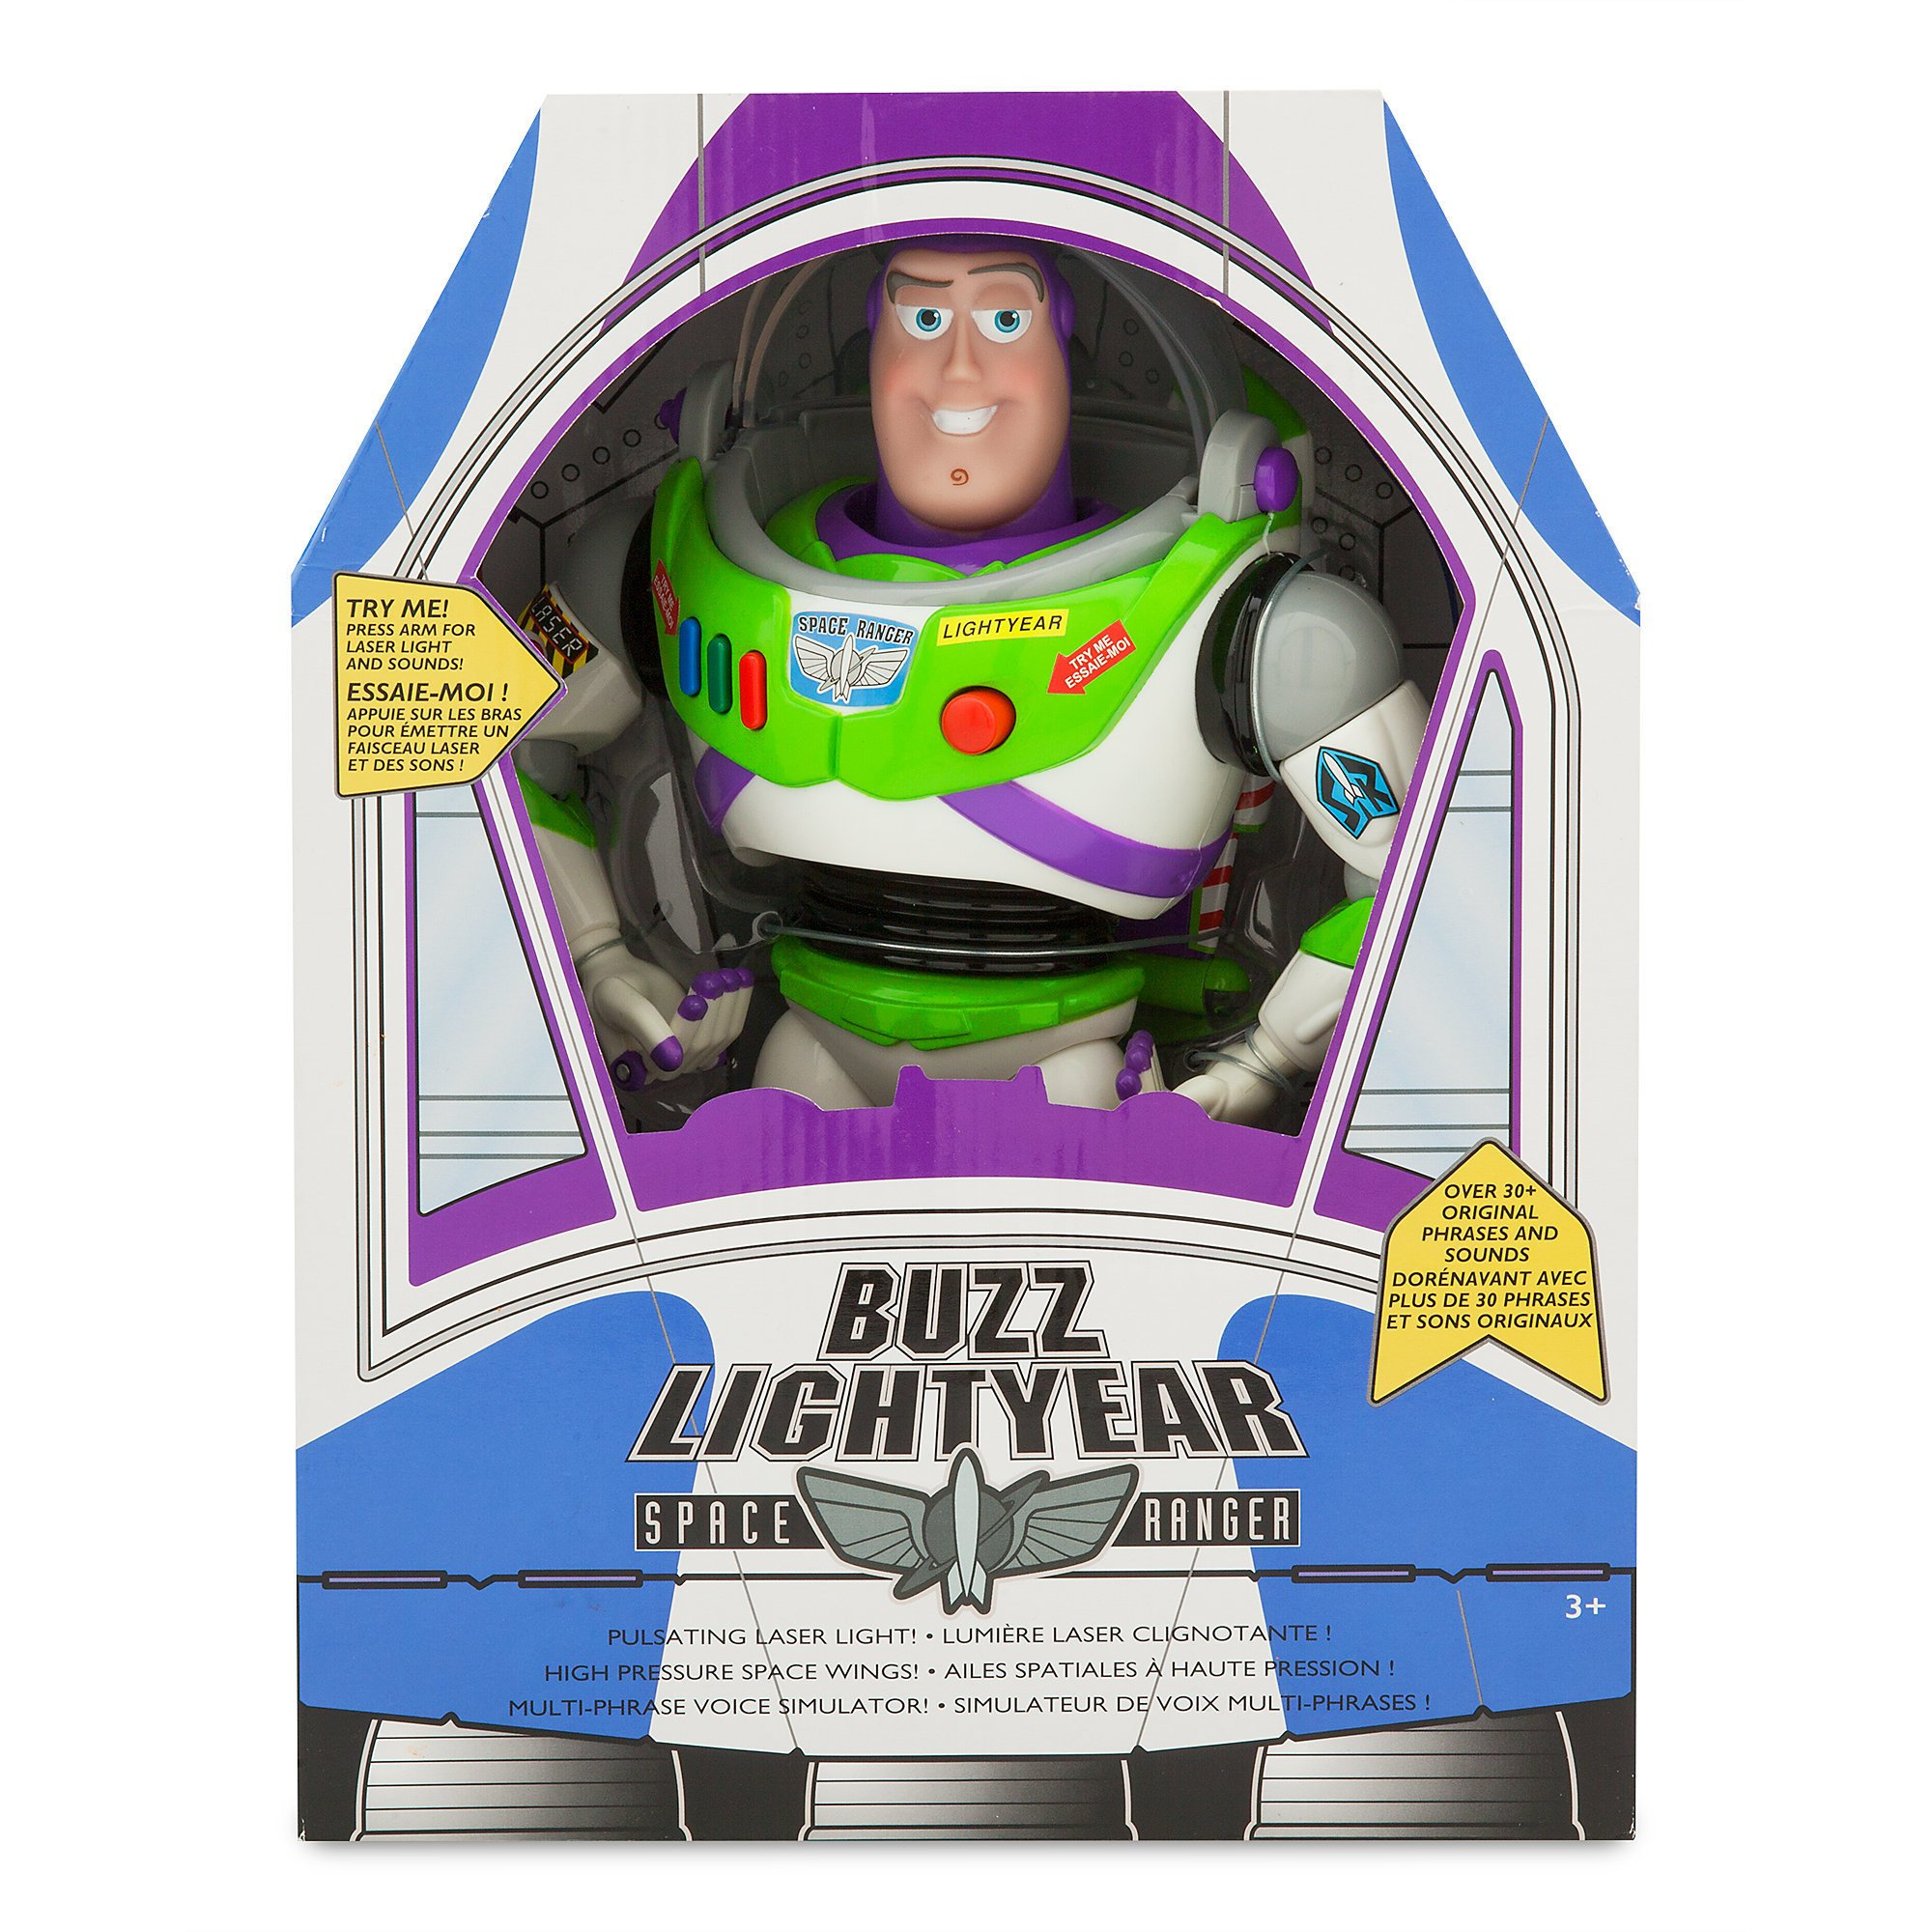 Disney New version Buzz Lightyear Talking Action Figurer 12'' (30 original phrases and sounds)